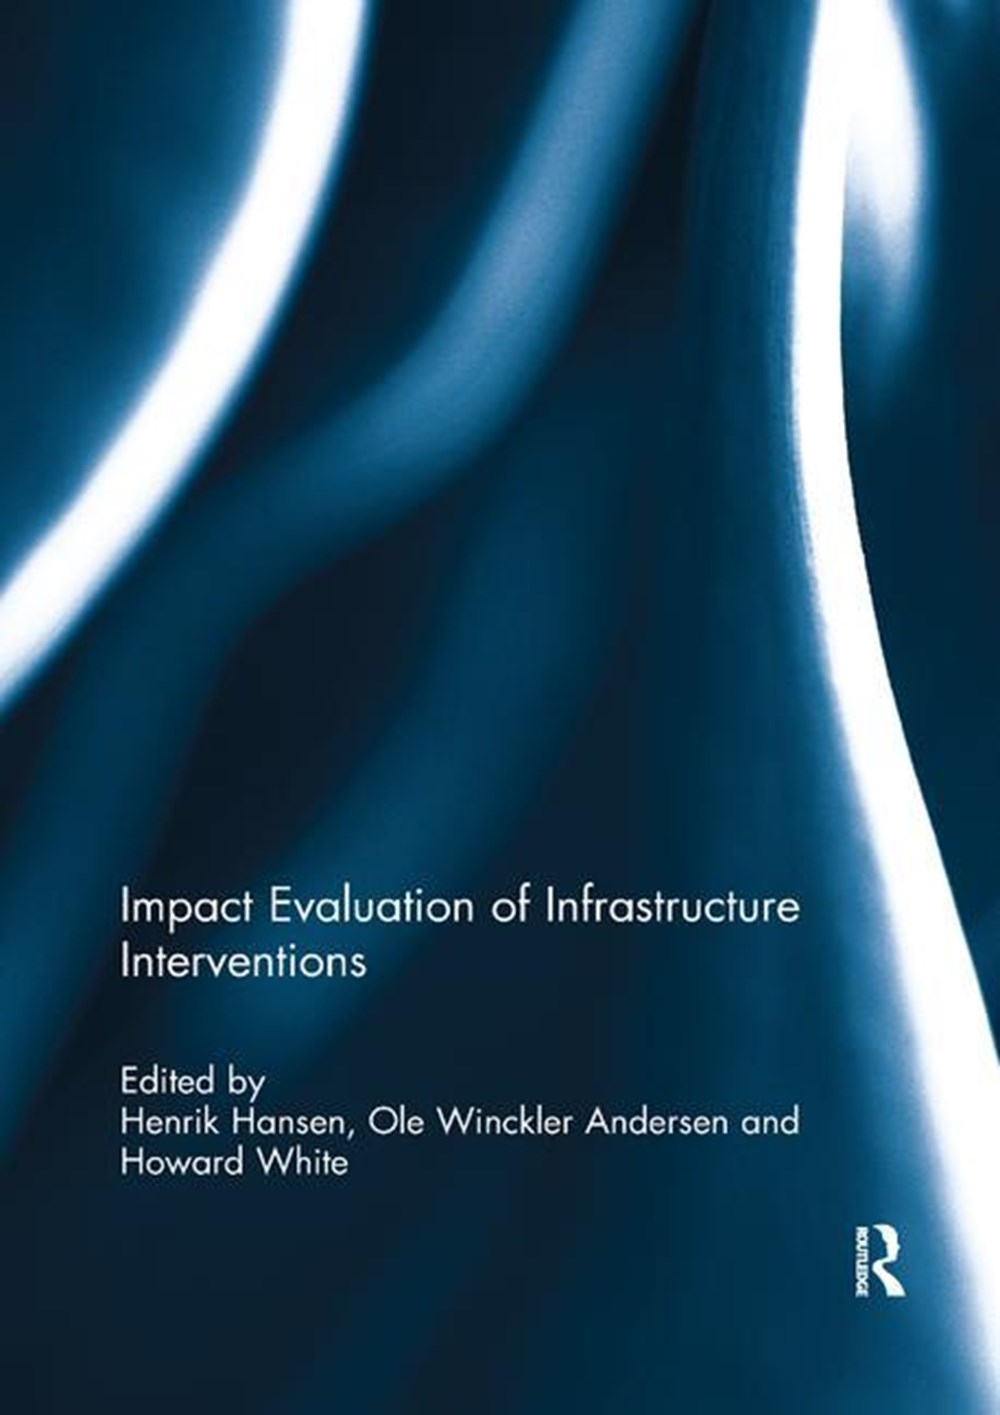 Impact Evaluation of Infrastructure Interventions